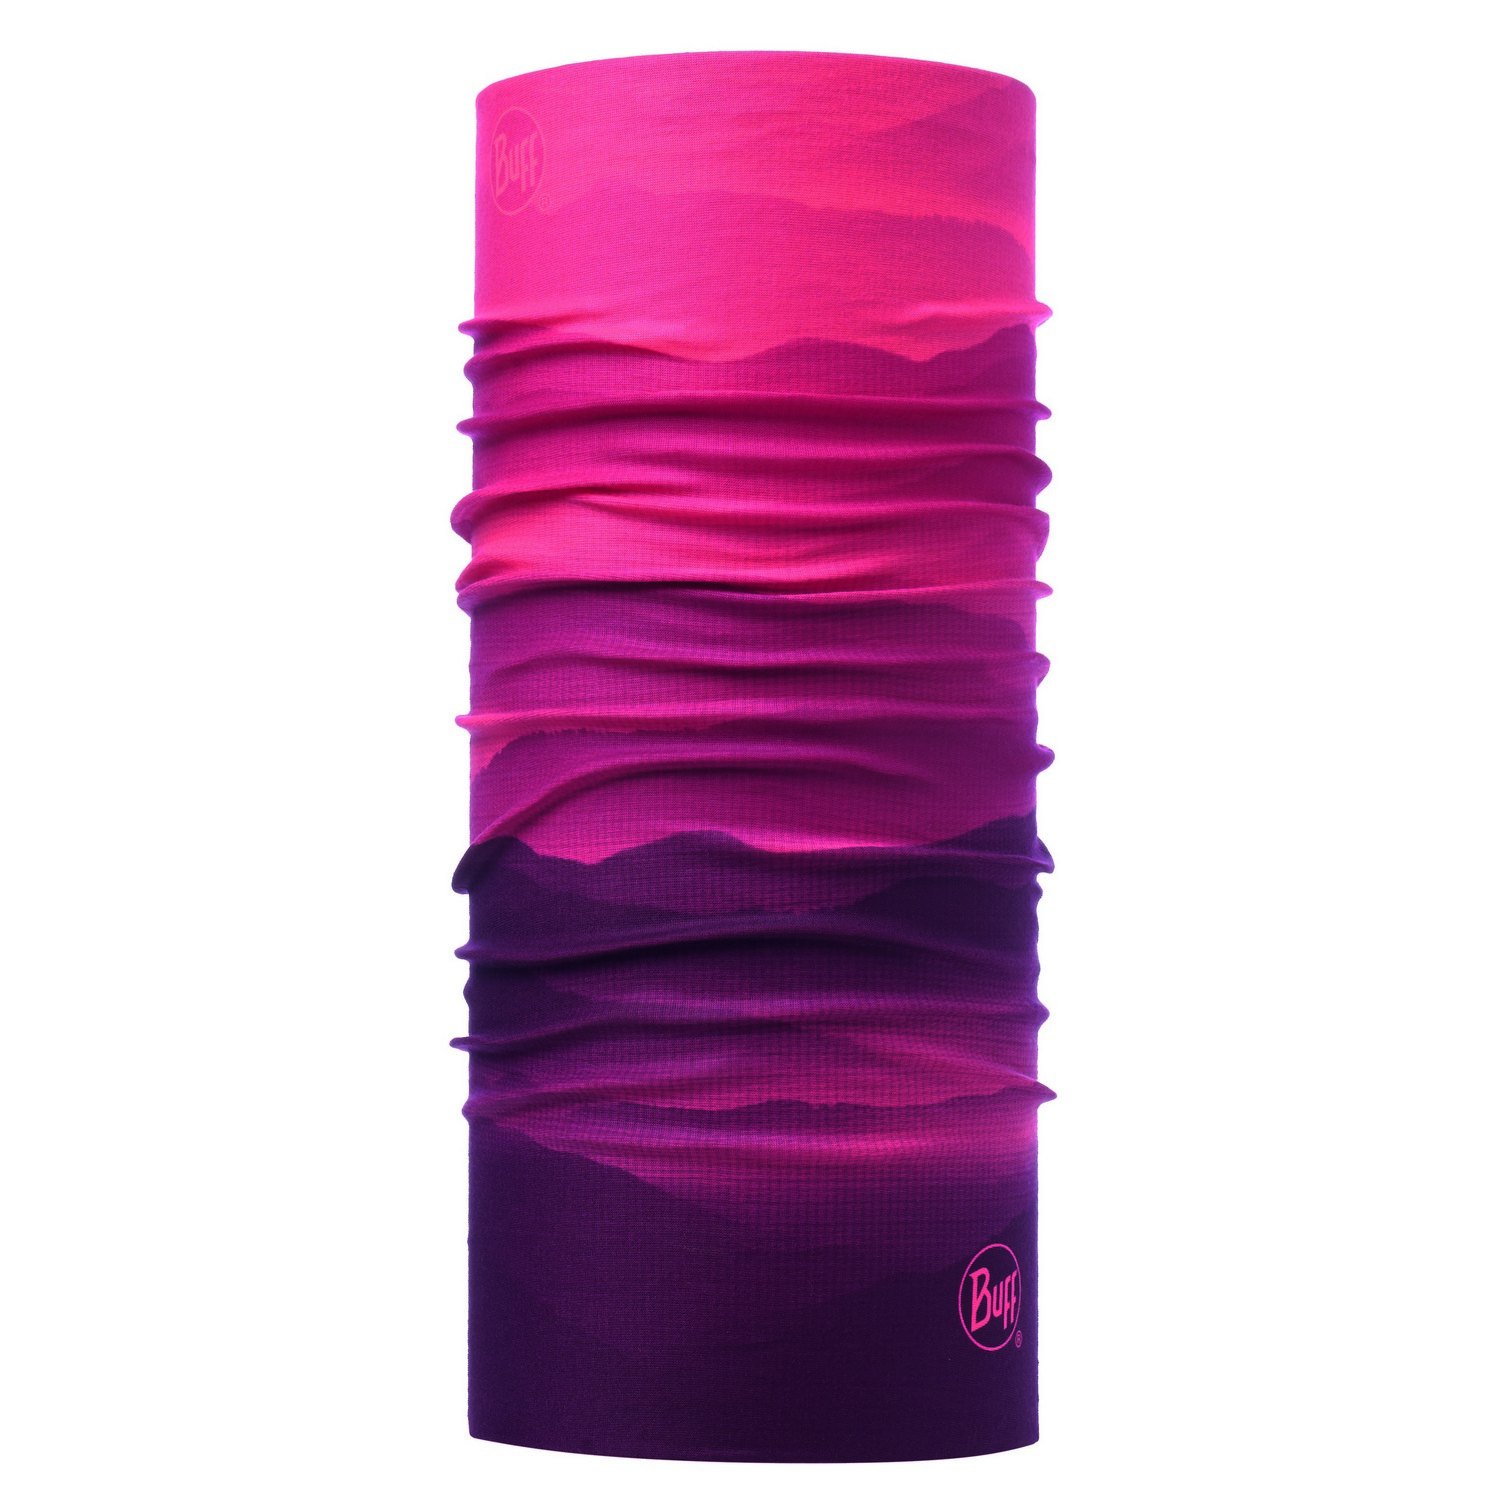 Бандана Buff Original Soft Hills Pink Fluor (117953.522.10.00)